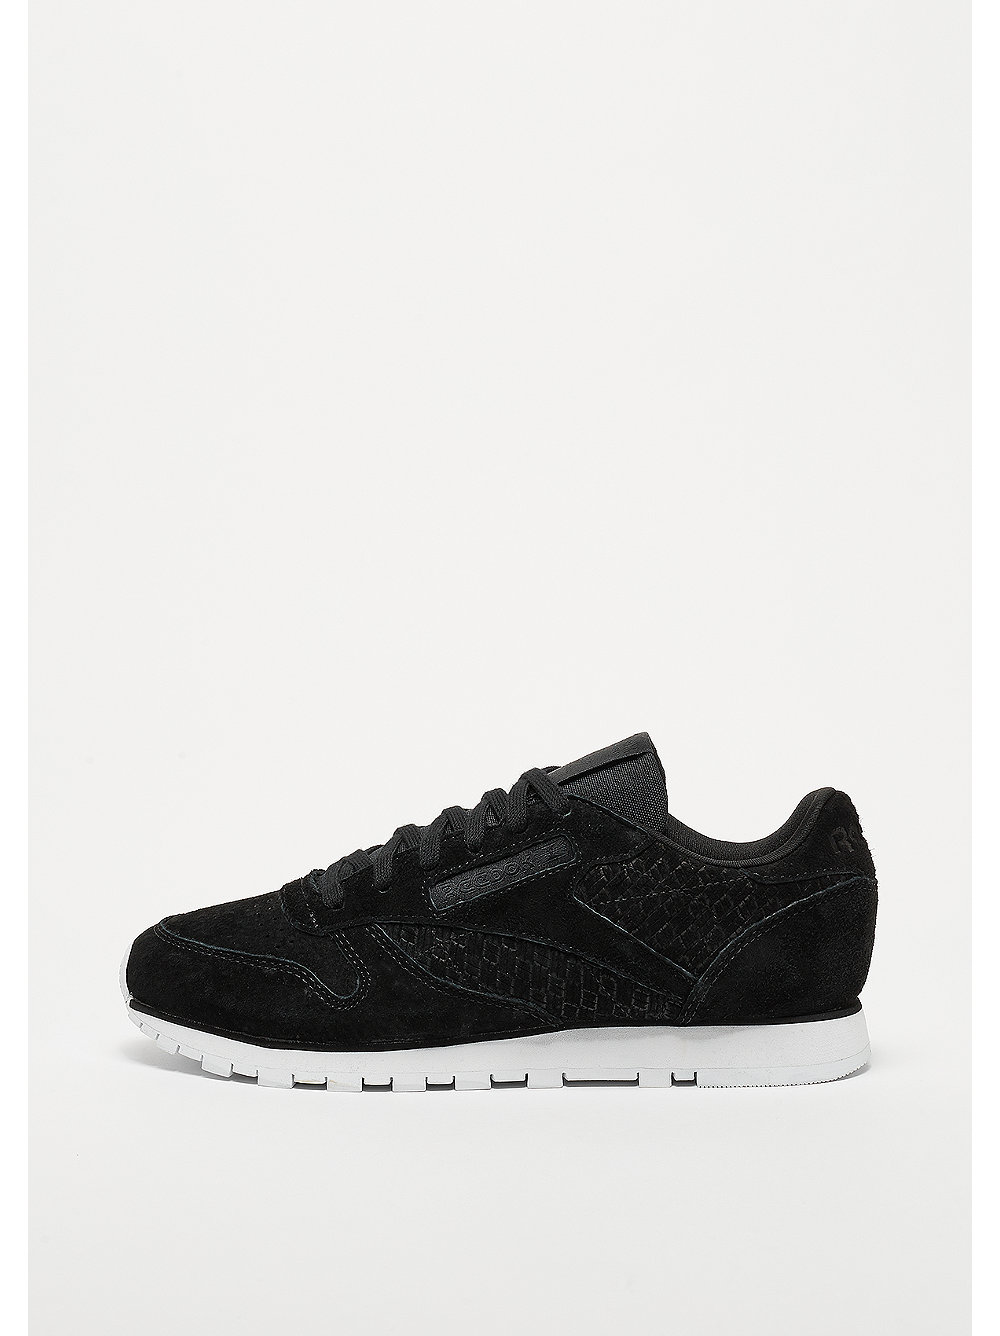 Classic Leather Woven black